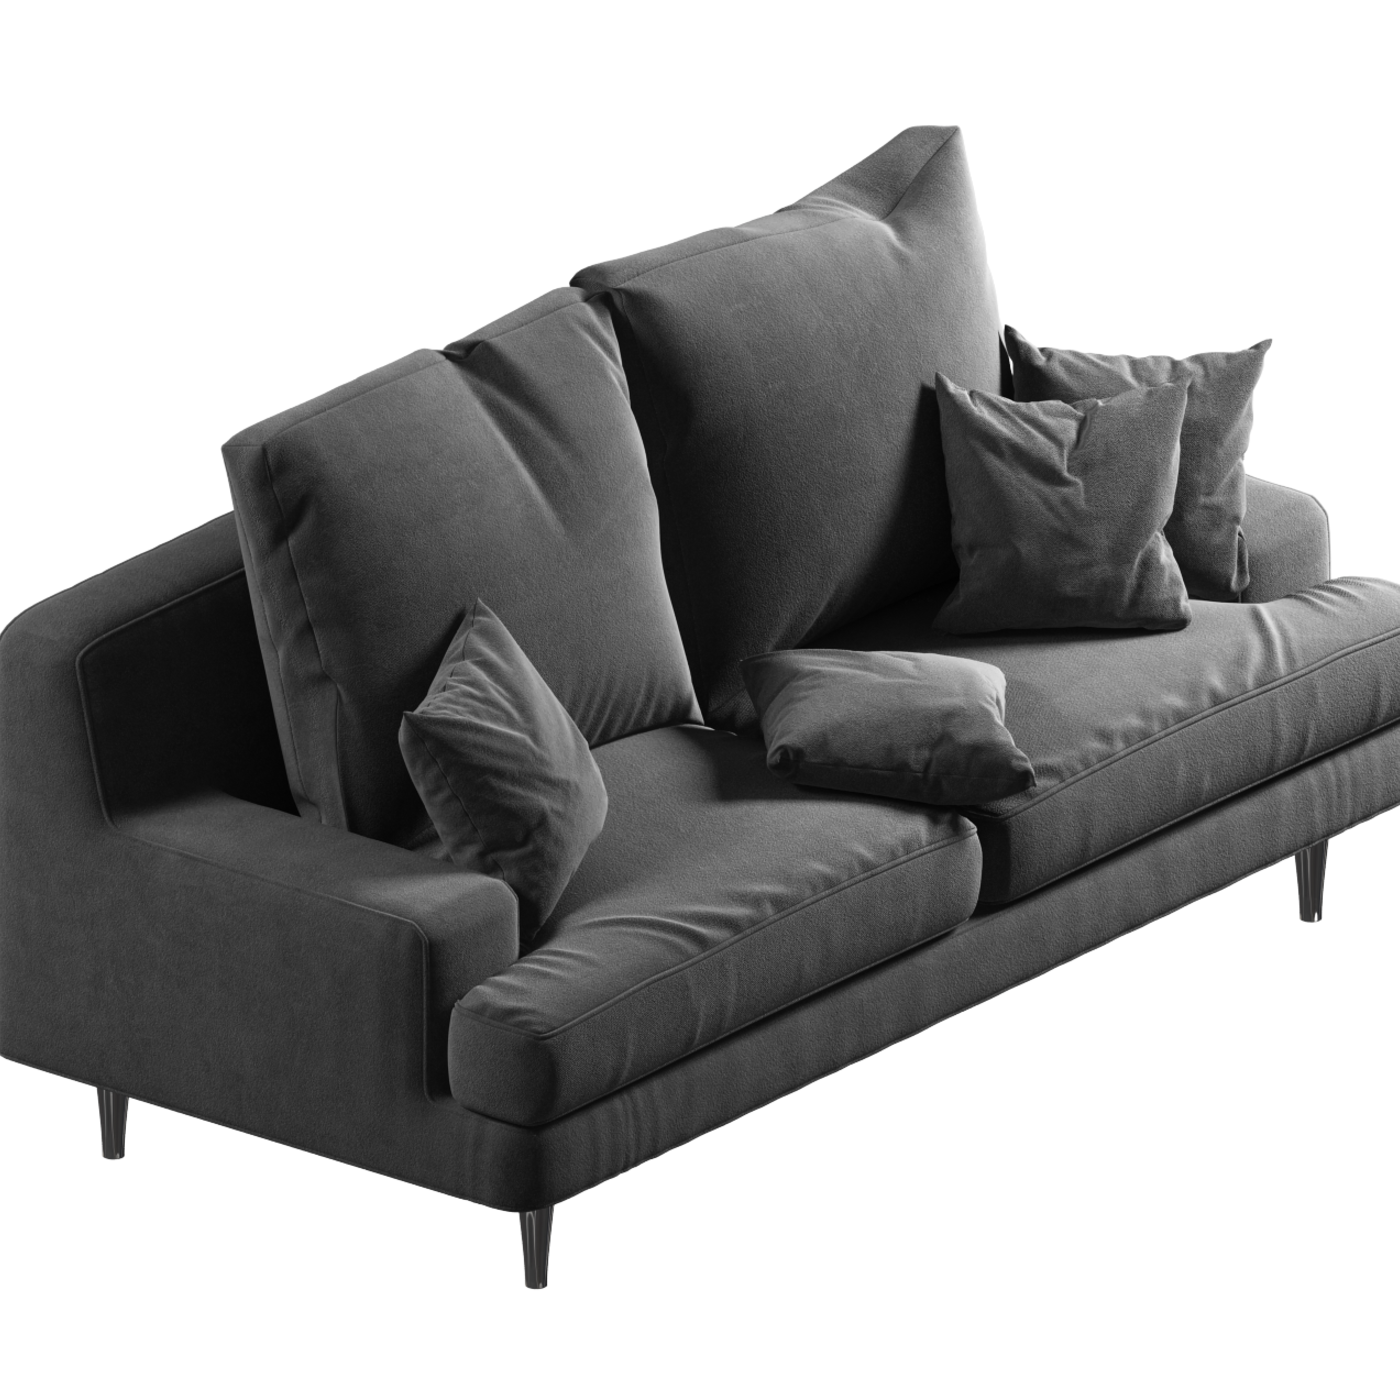 15 Sofa Pack Collection